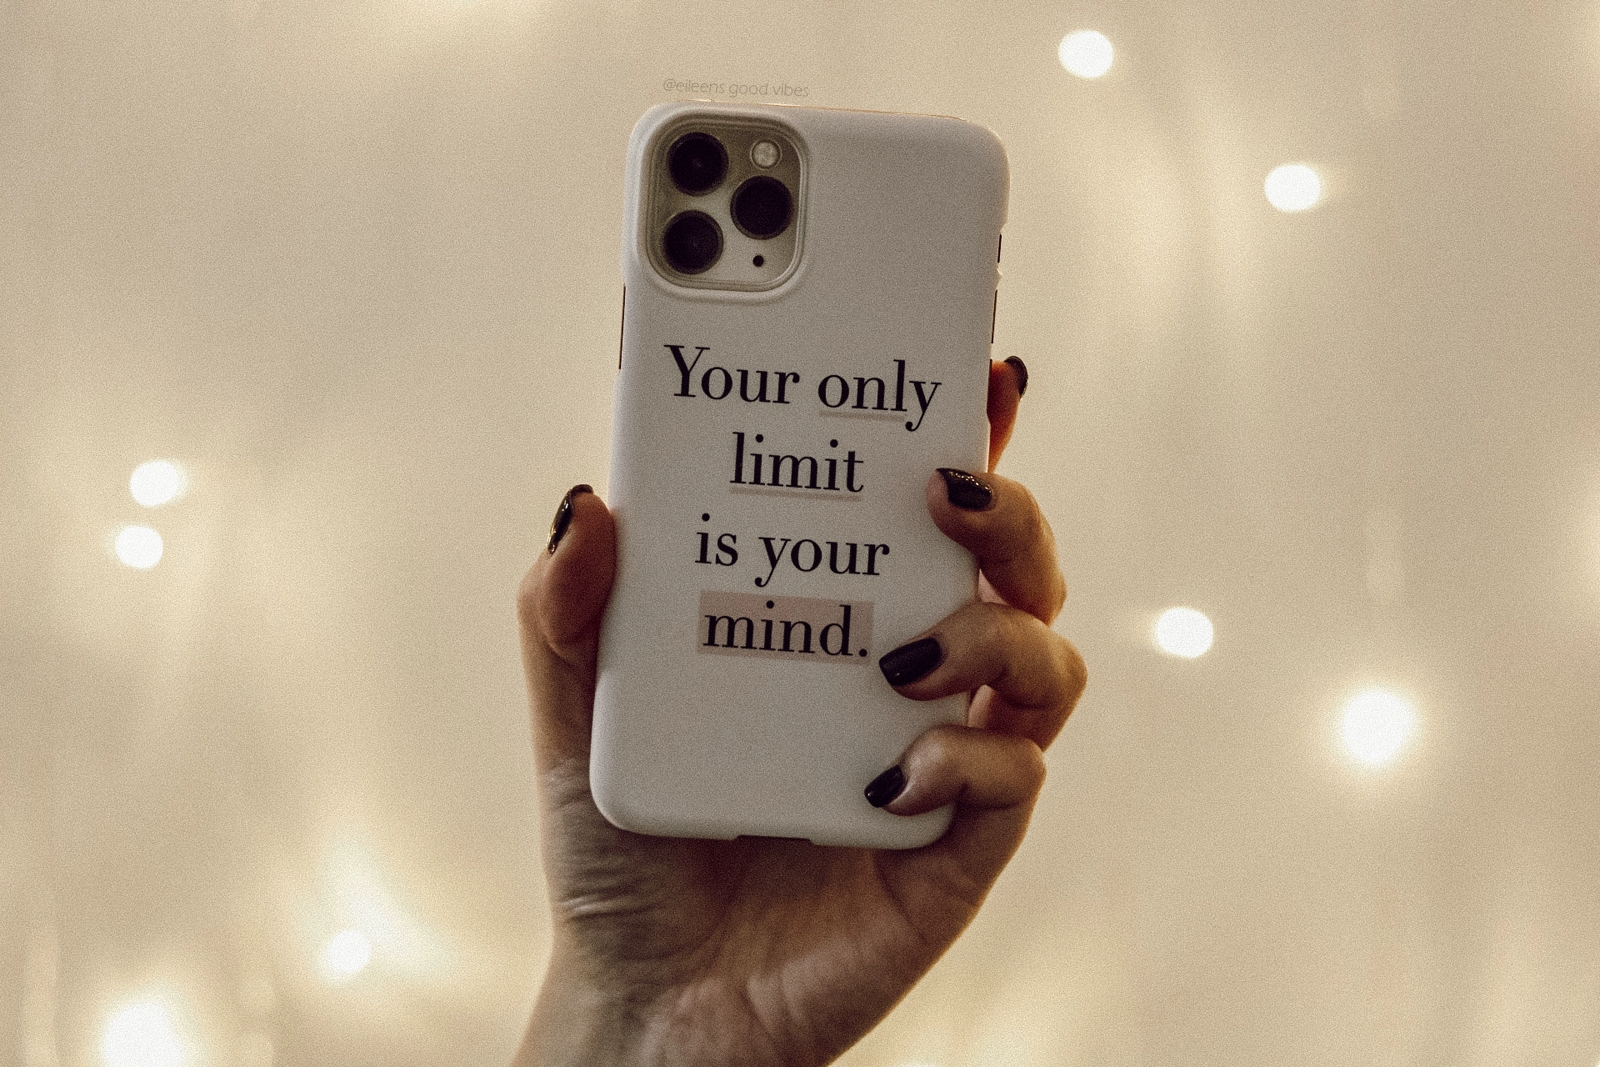 Handyhülle mit dem Spruch Your only limit is your mind